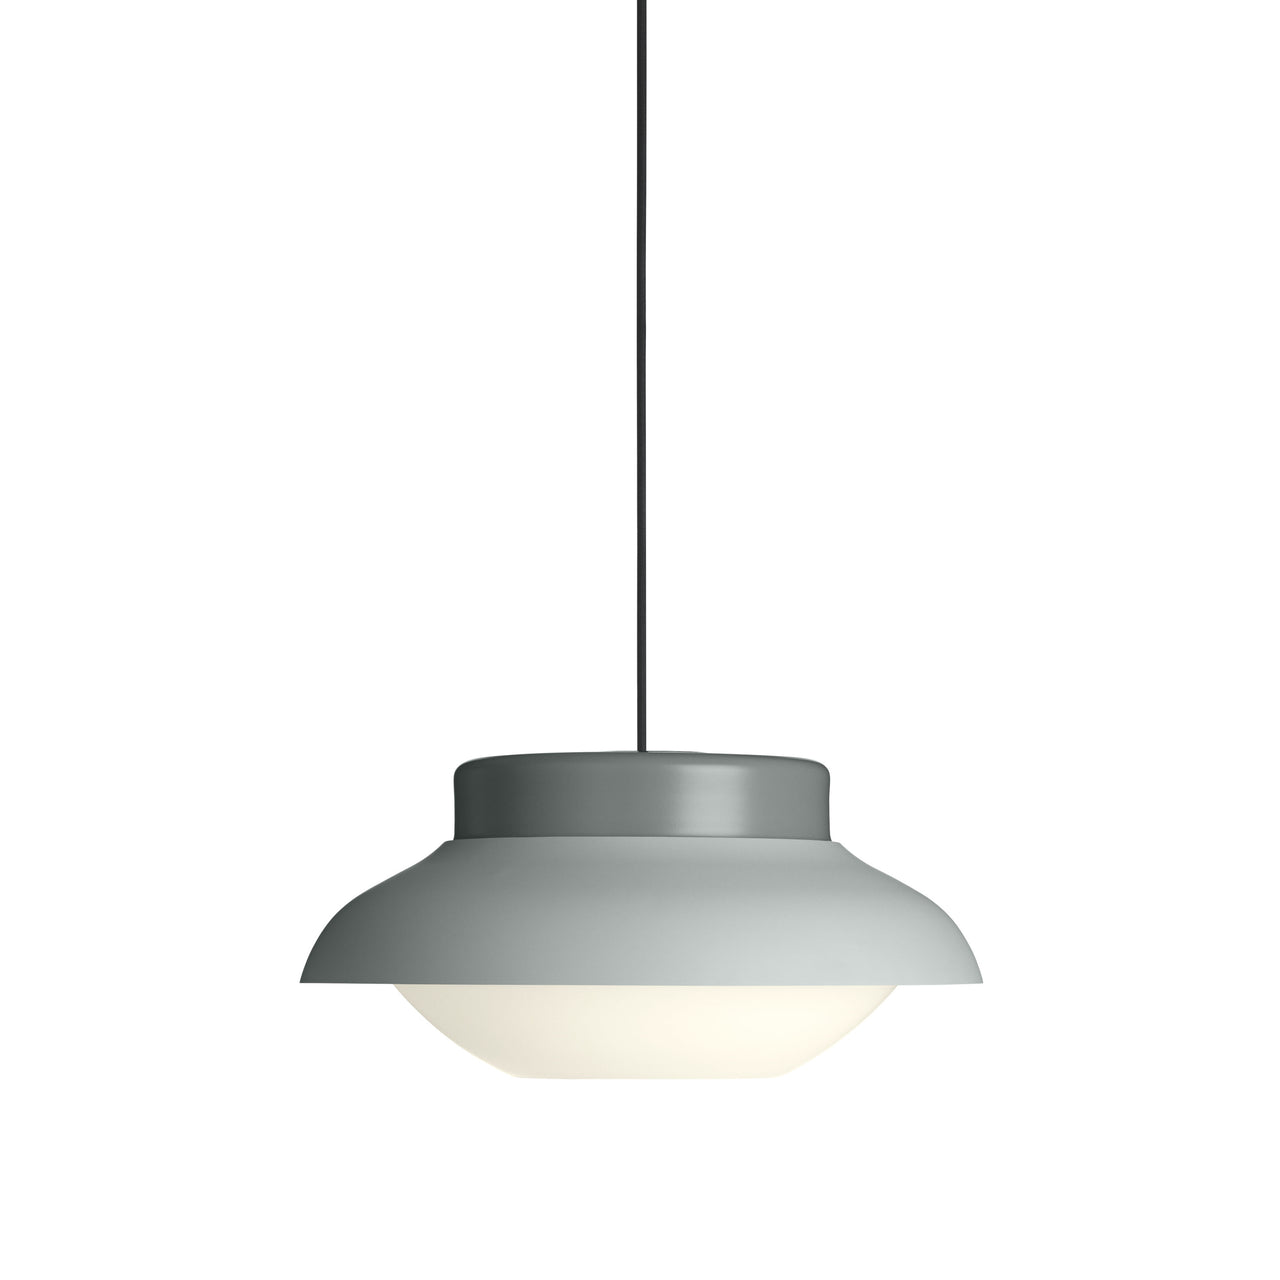 Collar Pendant Light: Large + Soft Fog